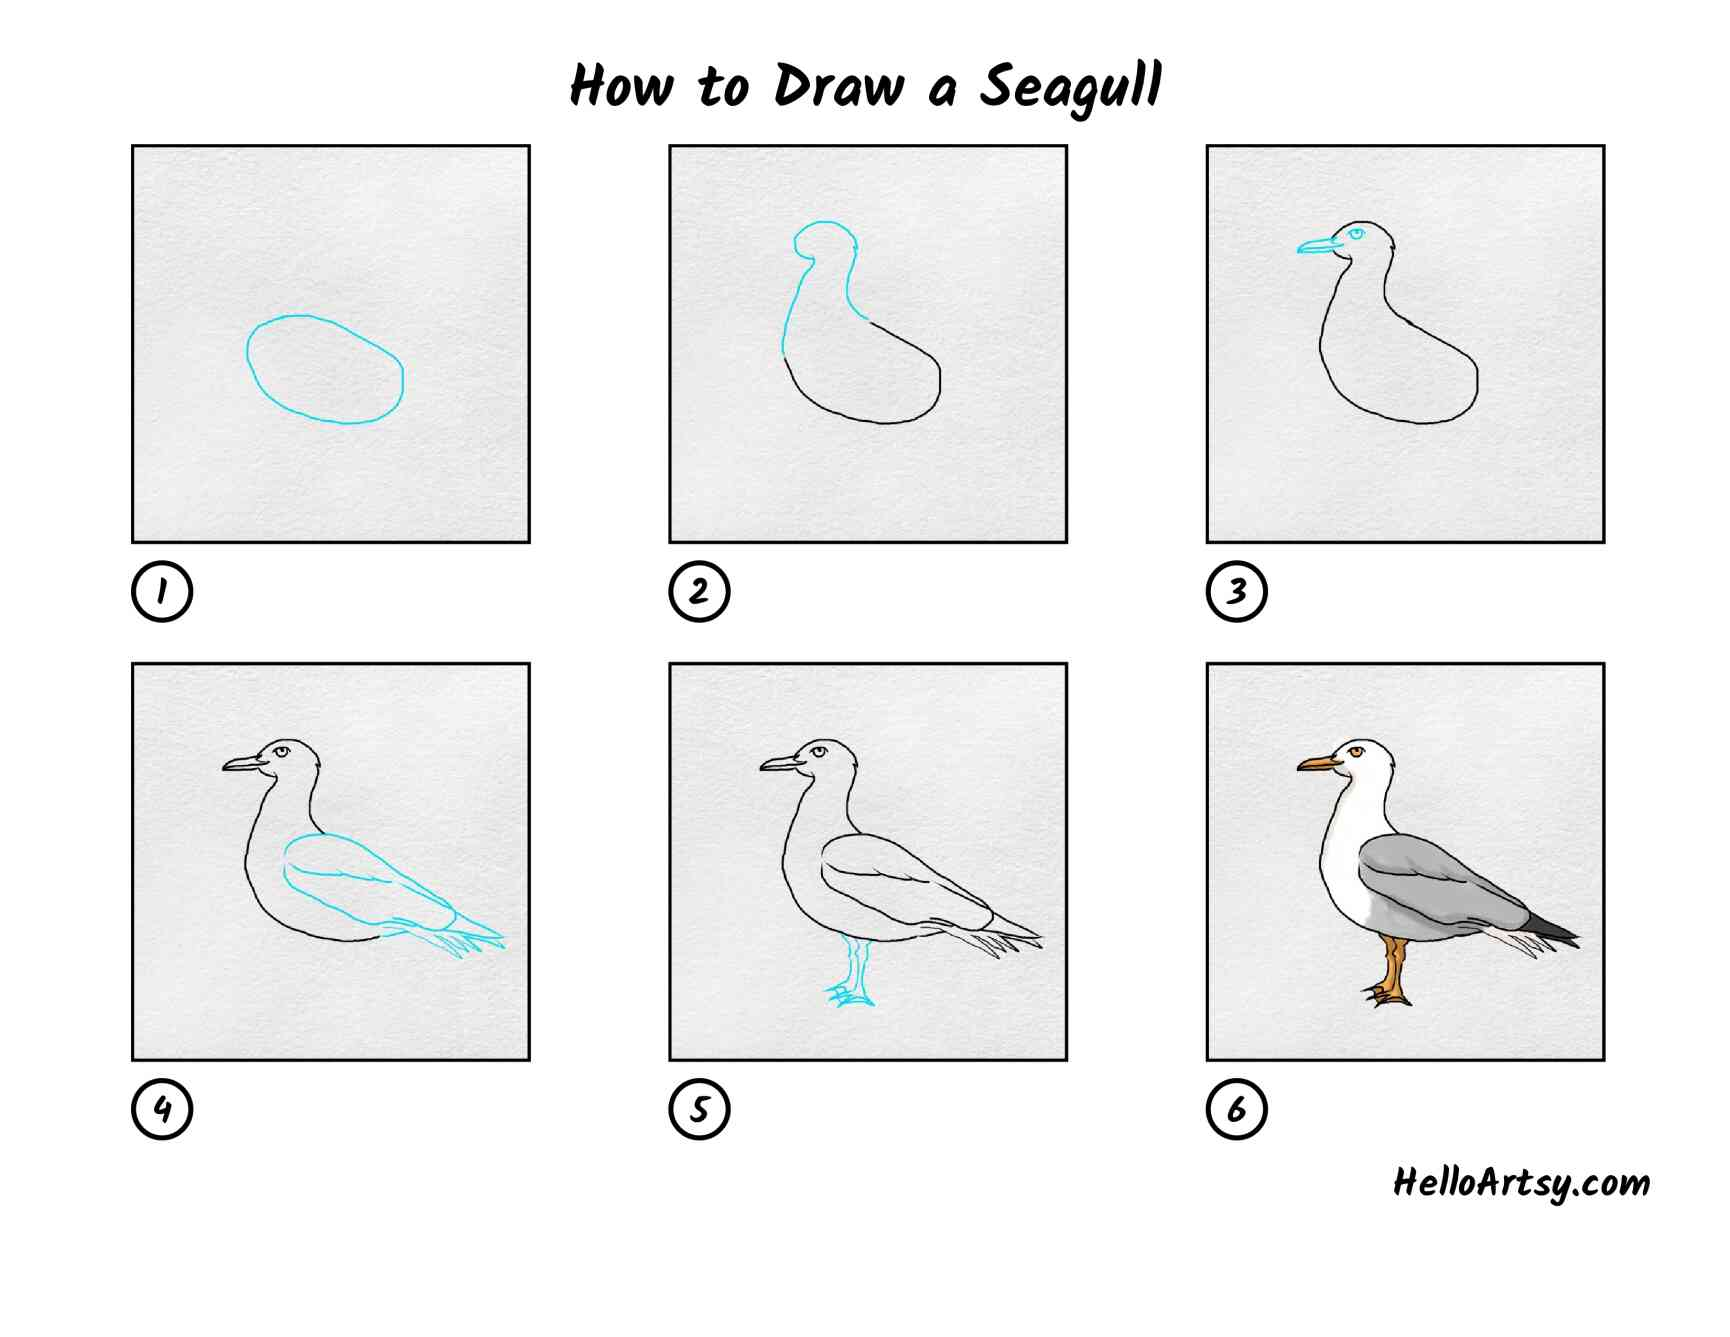 How To Draw A Seagull: All Steps